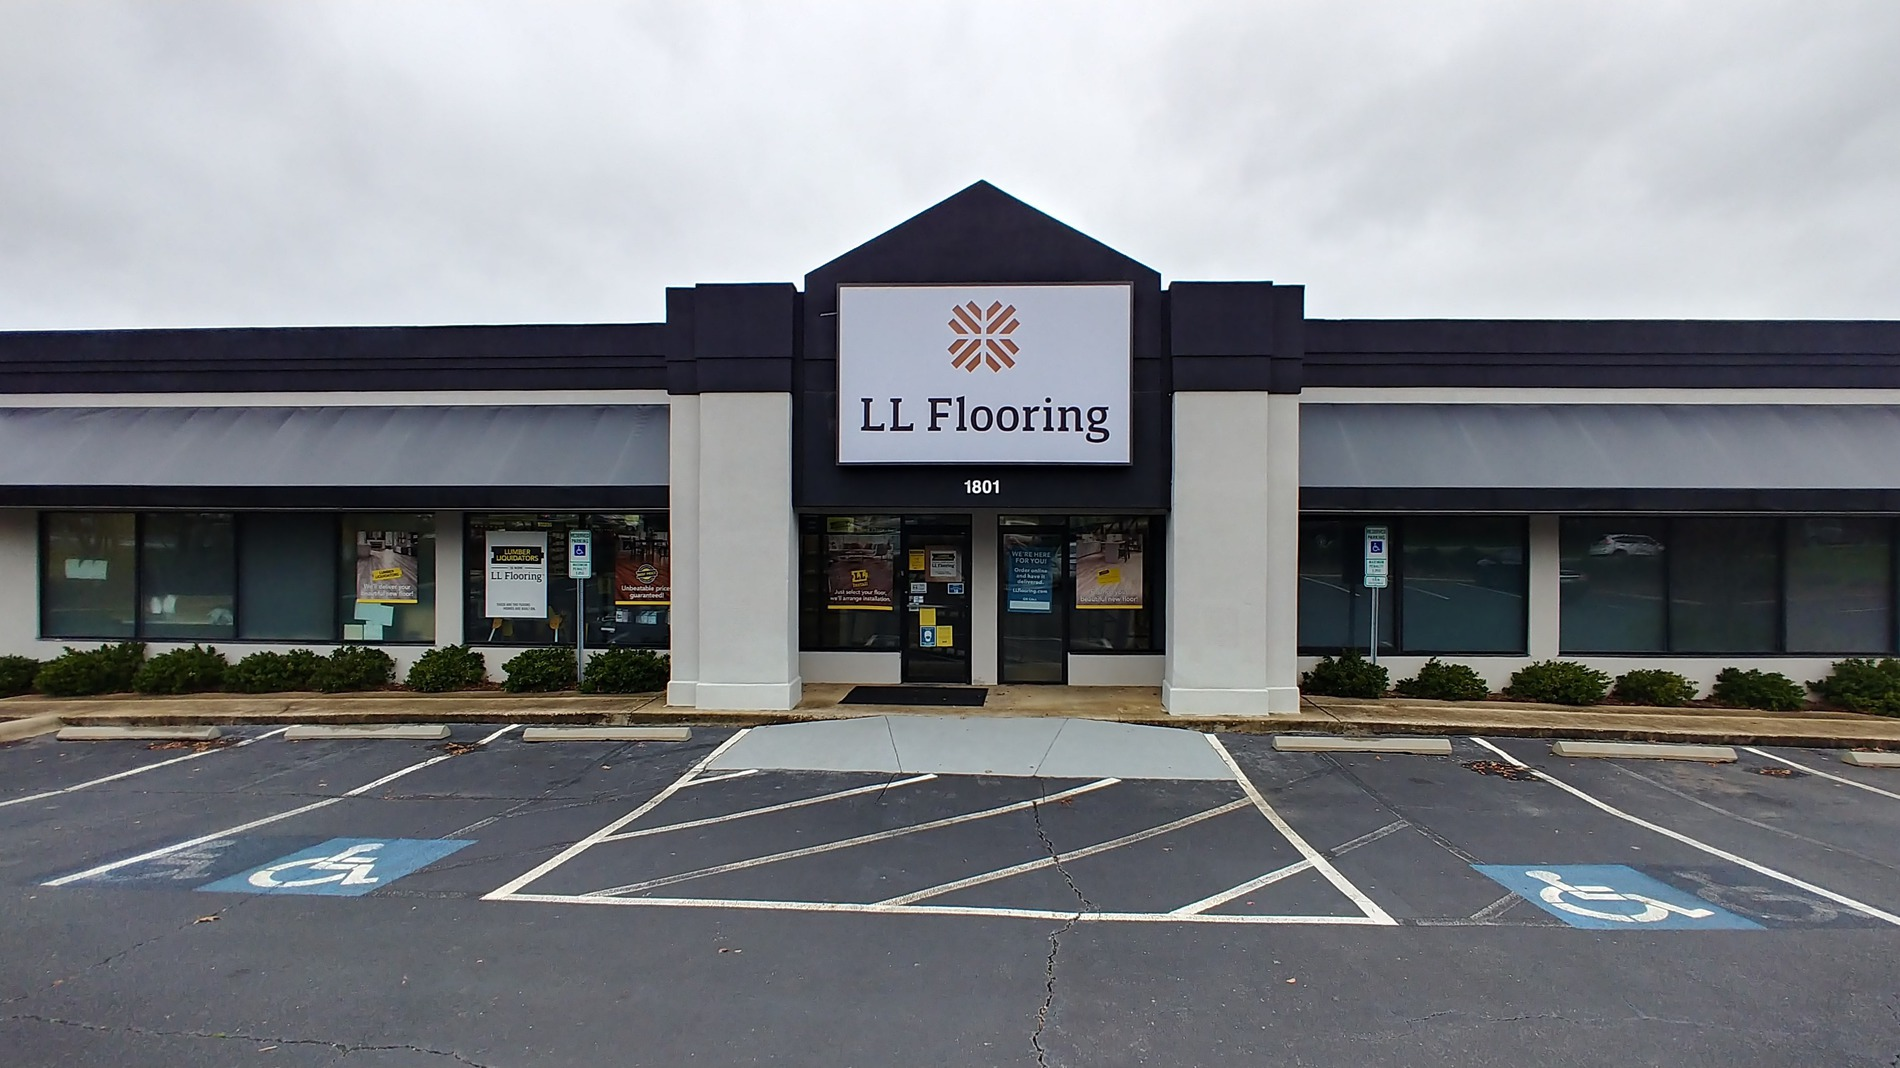 LL Flooring #1354 Rock Hill | 1801 Cherry Road | Storefront